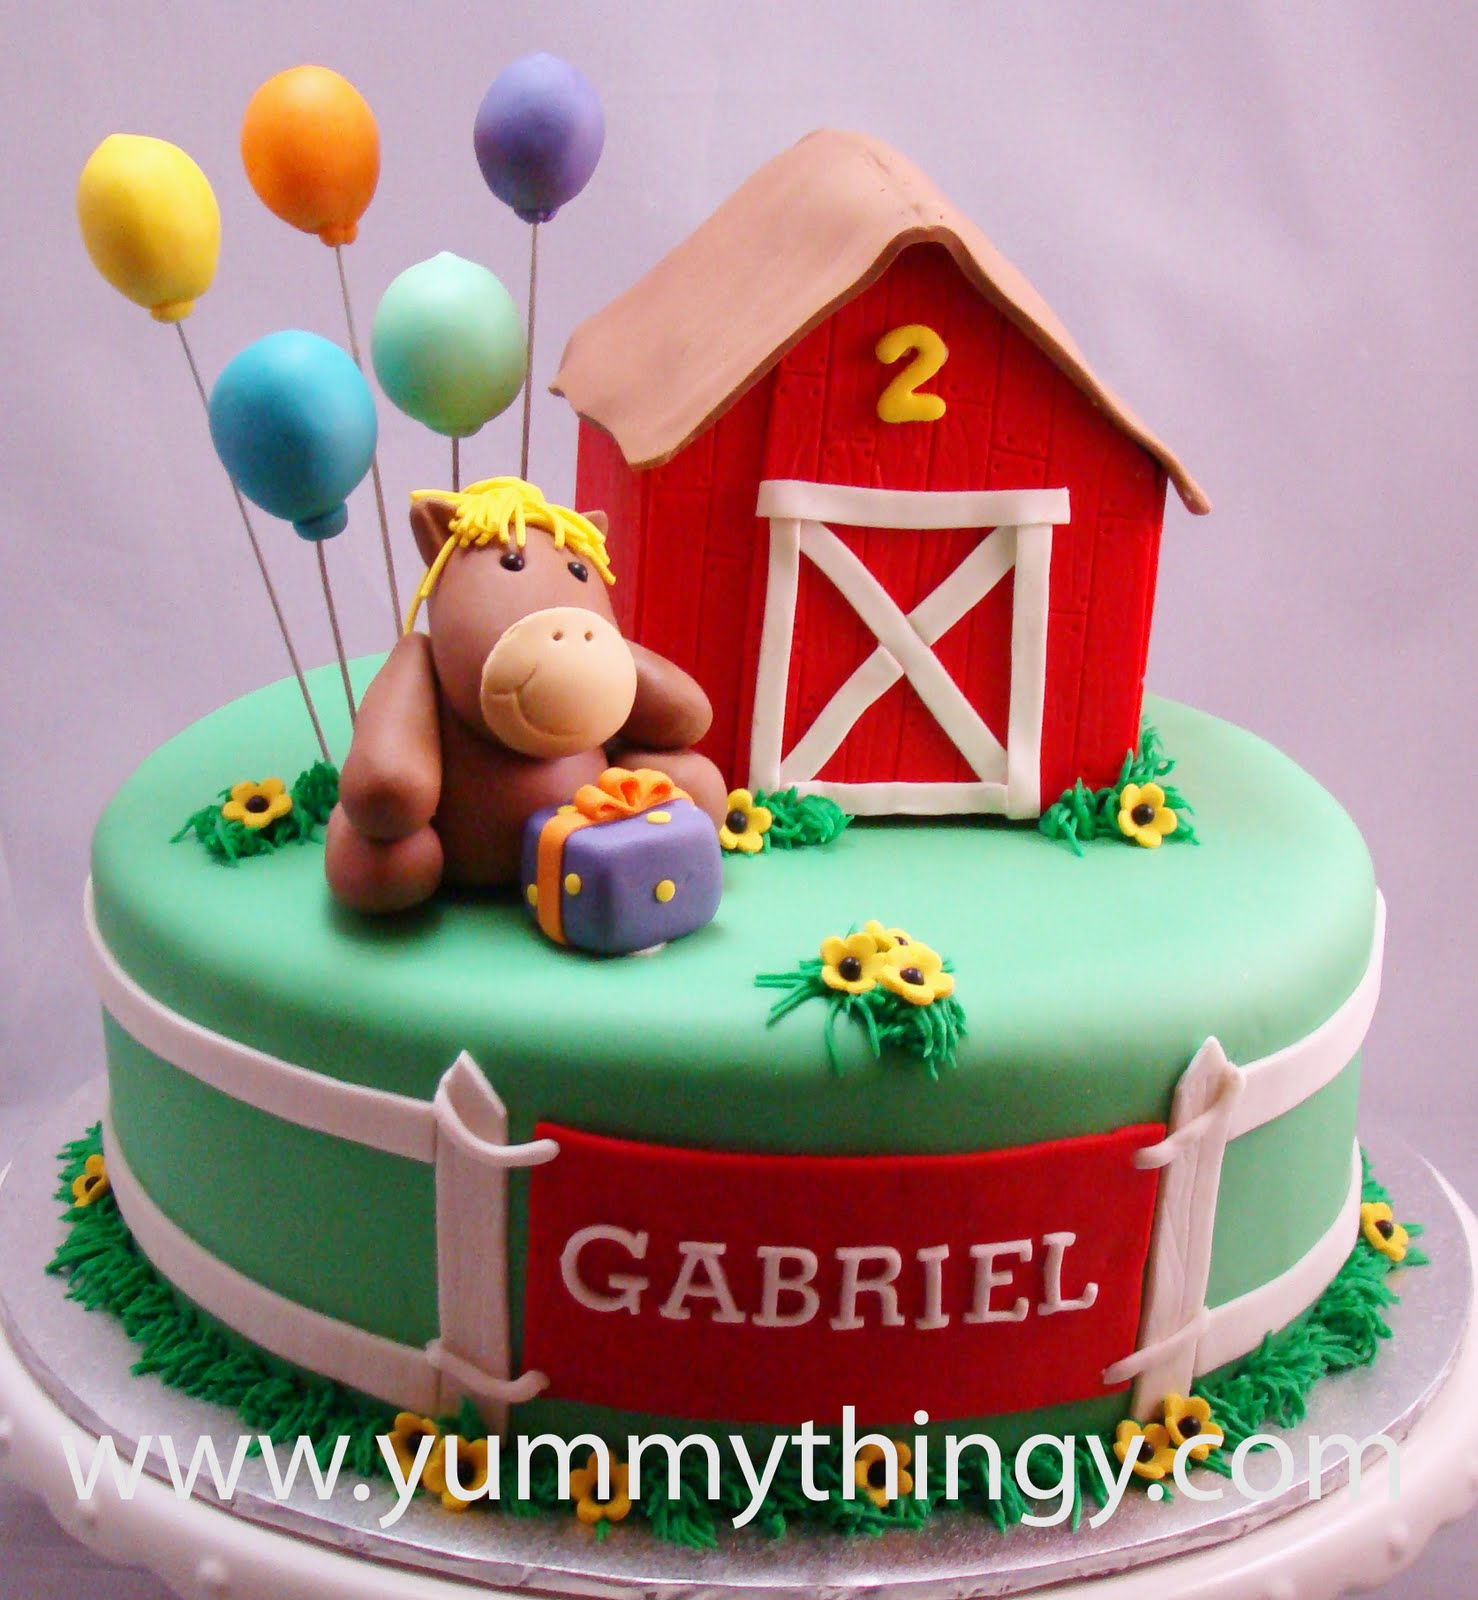 Yummy Thingy Farm Theme Cake